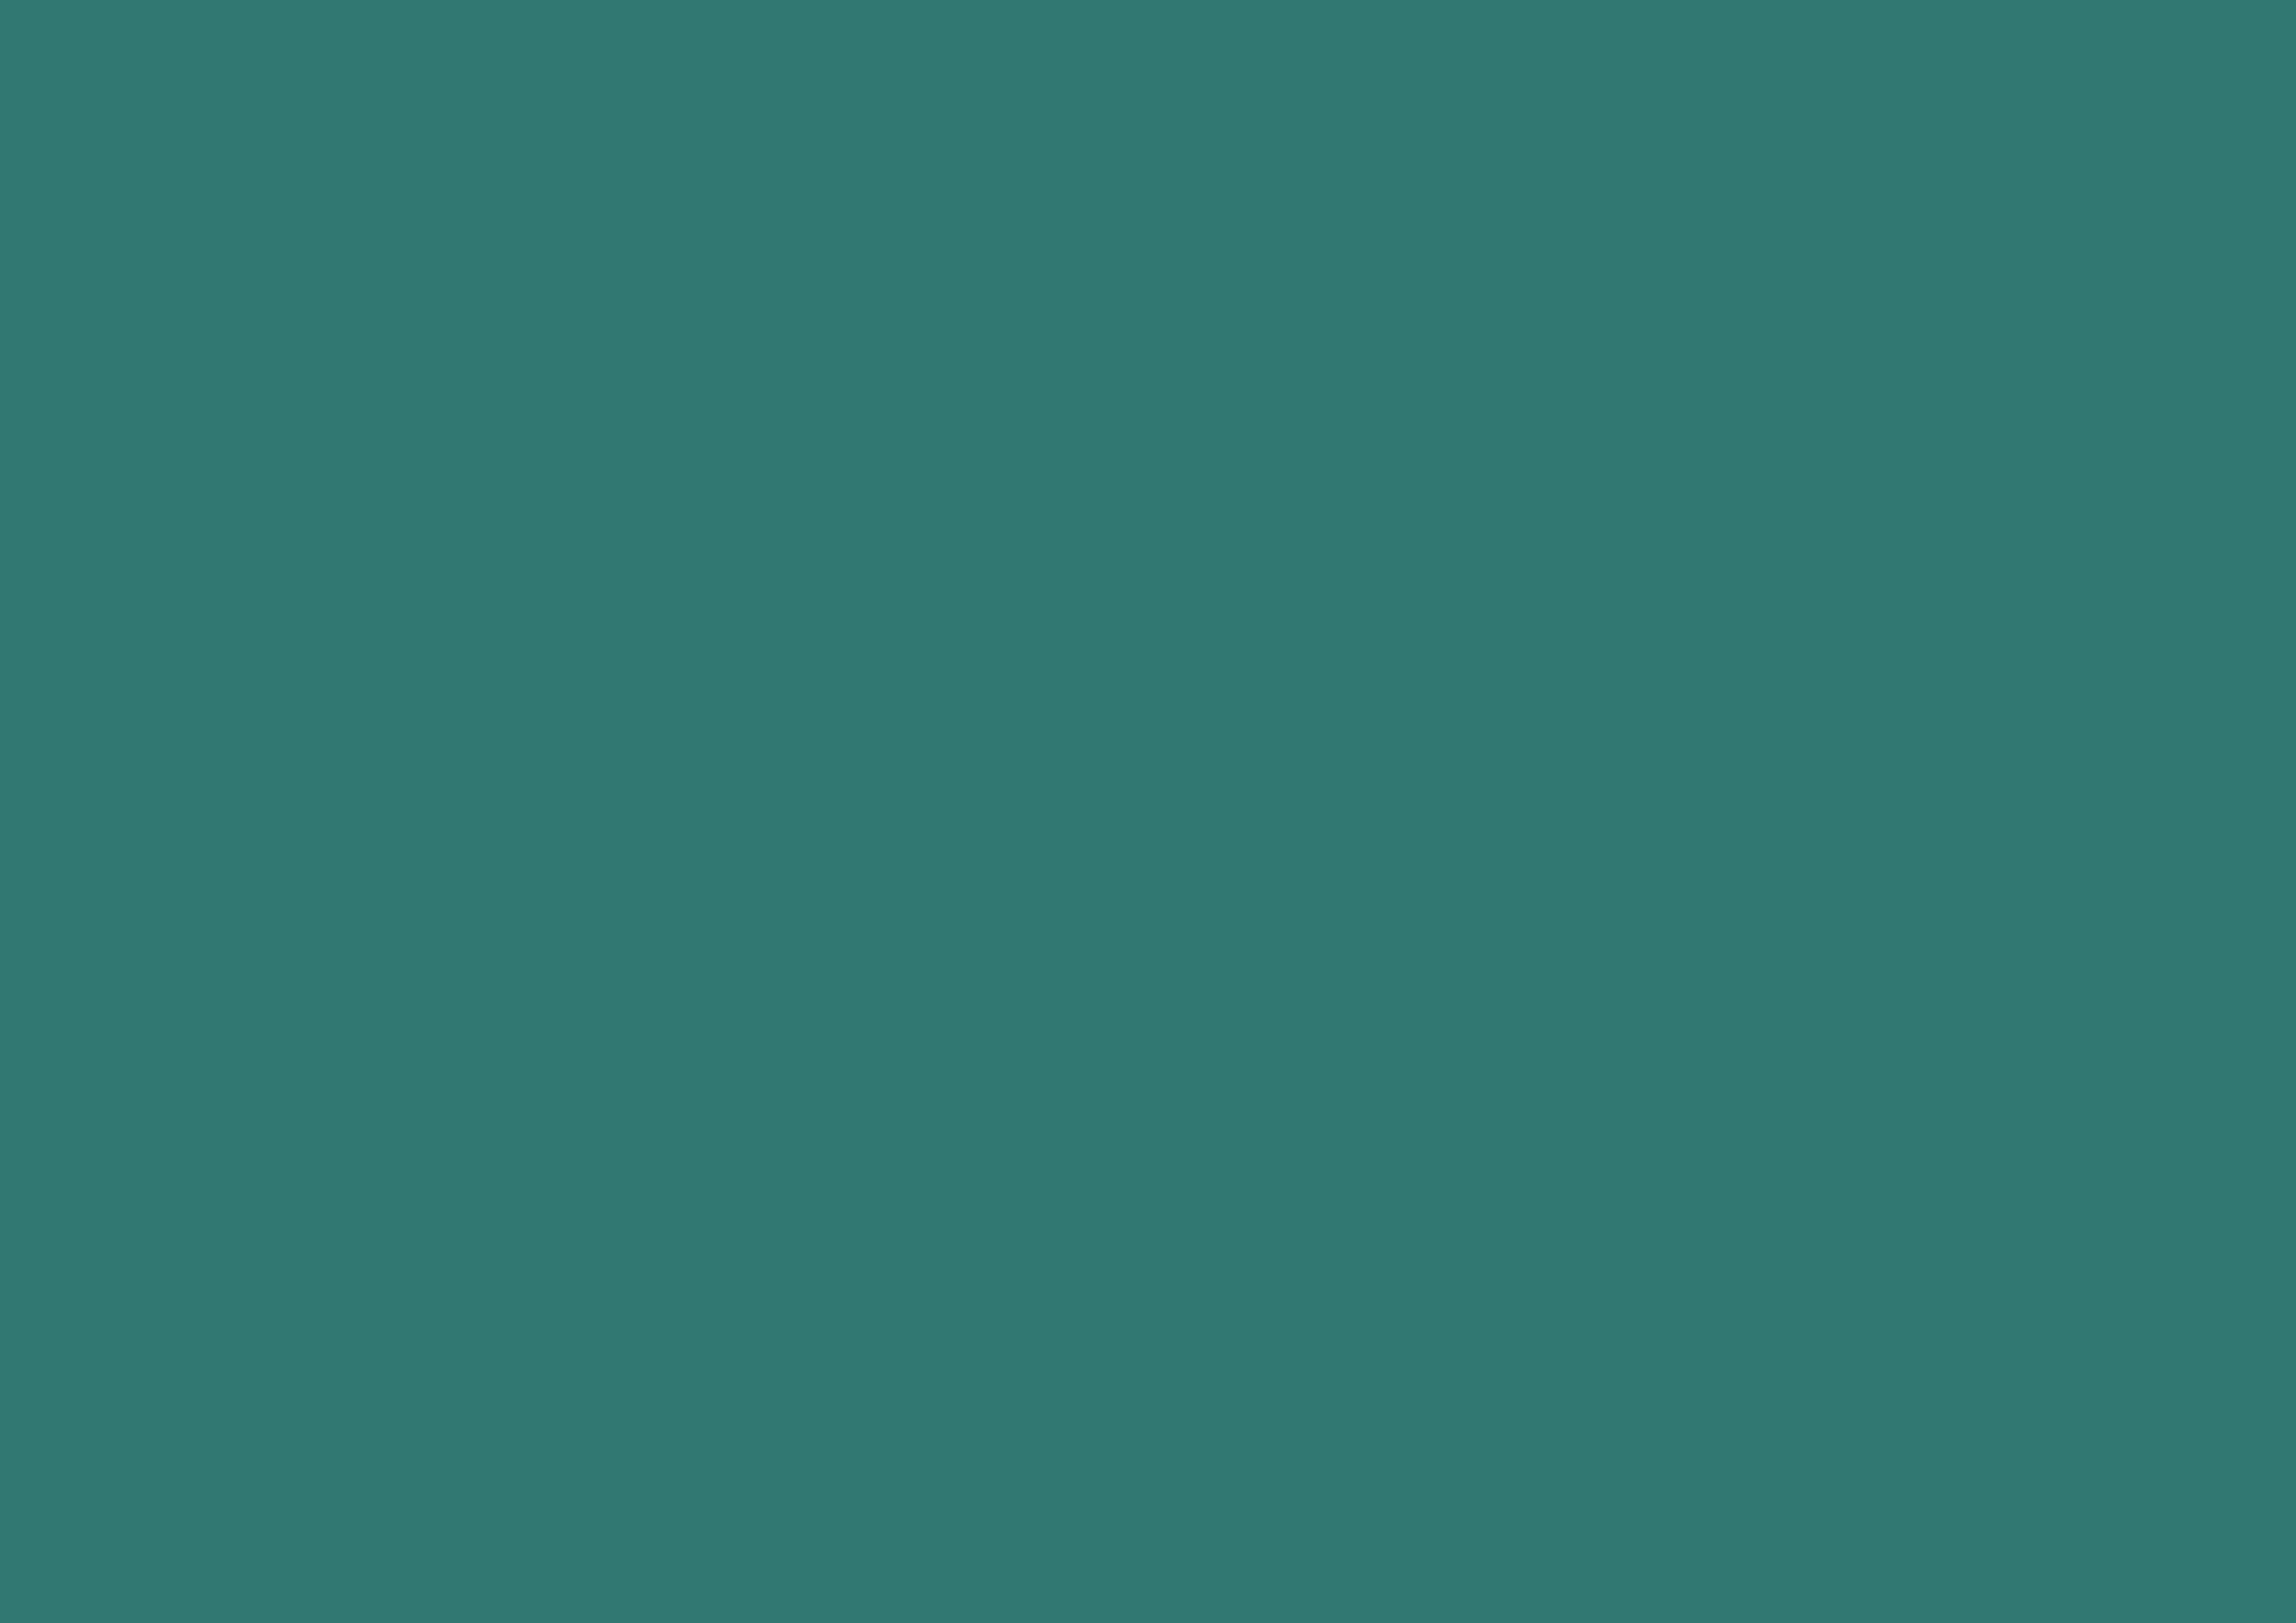 3508x2480 Myrtle Green Solid Color Background